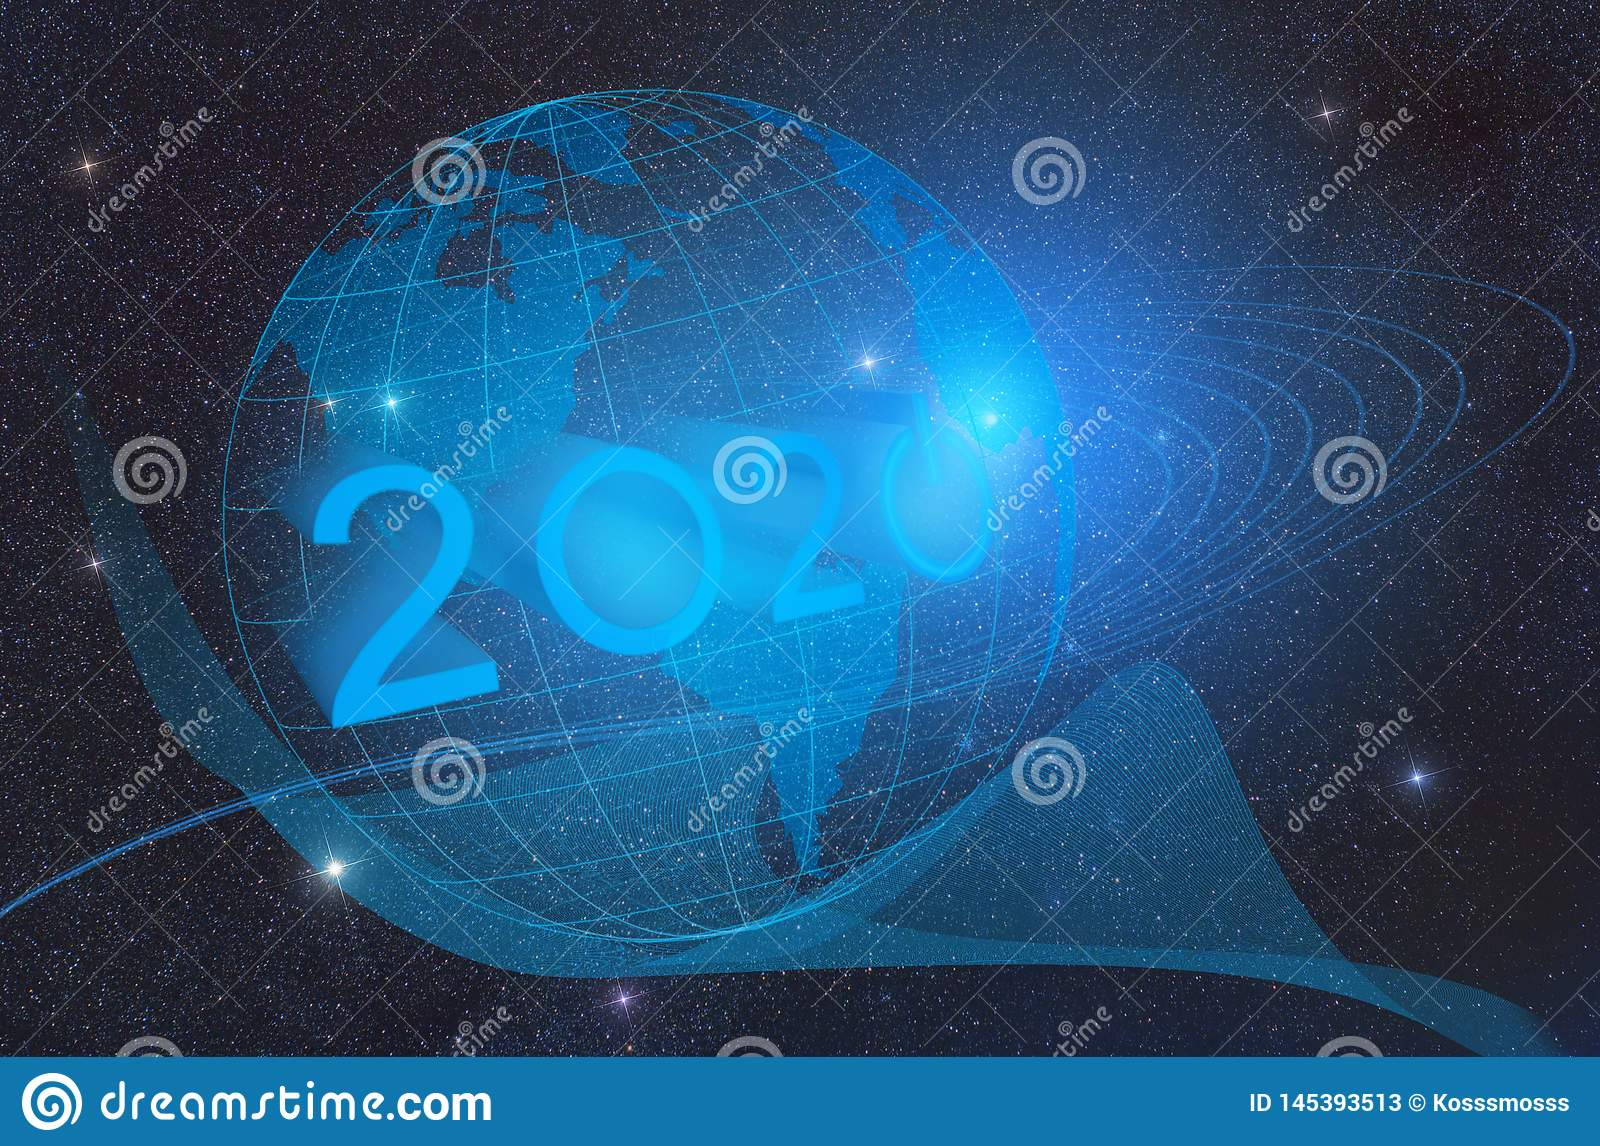 The concept of the advent of the new technological year 2020 and the development of artificial intelligence on the planet earth.